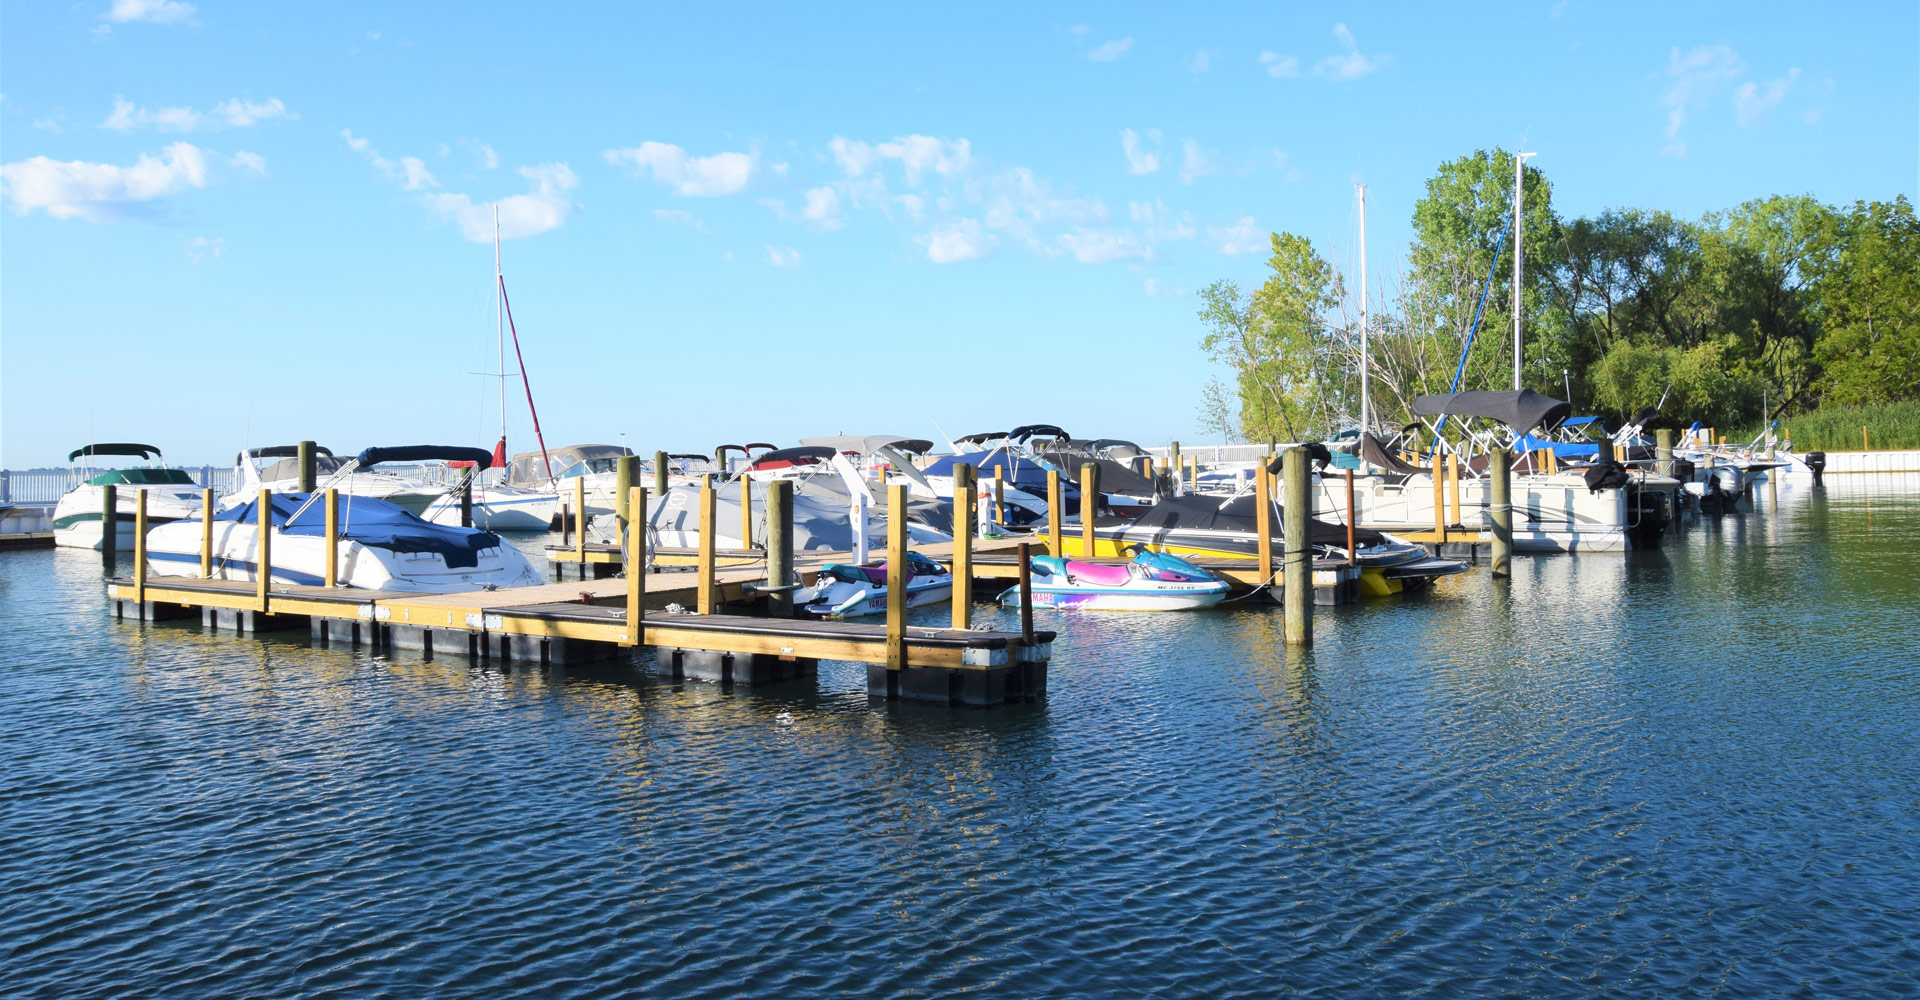 Secure marina with wet wells, dry wells and trailer storage